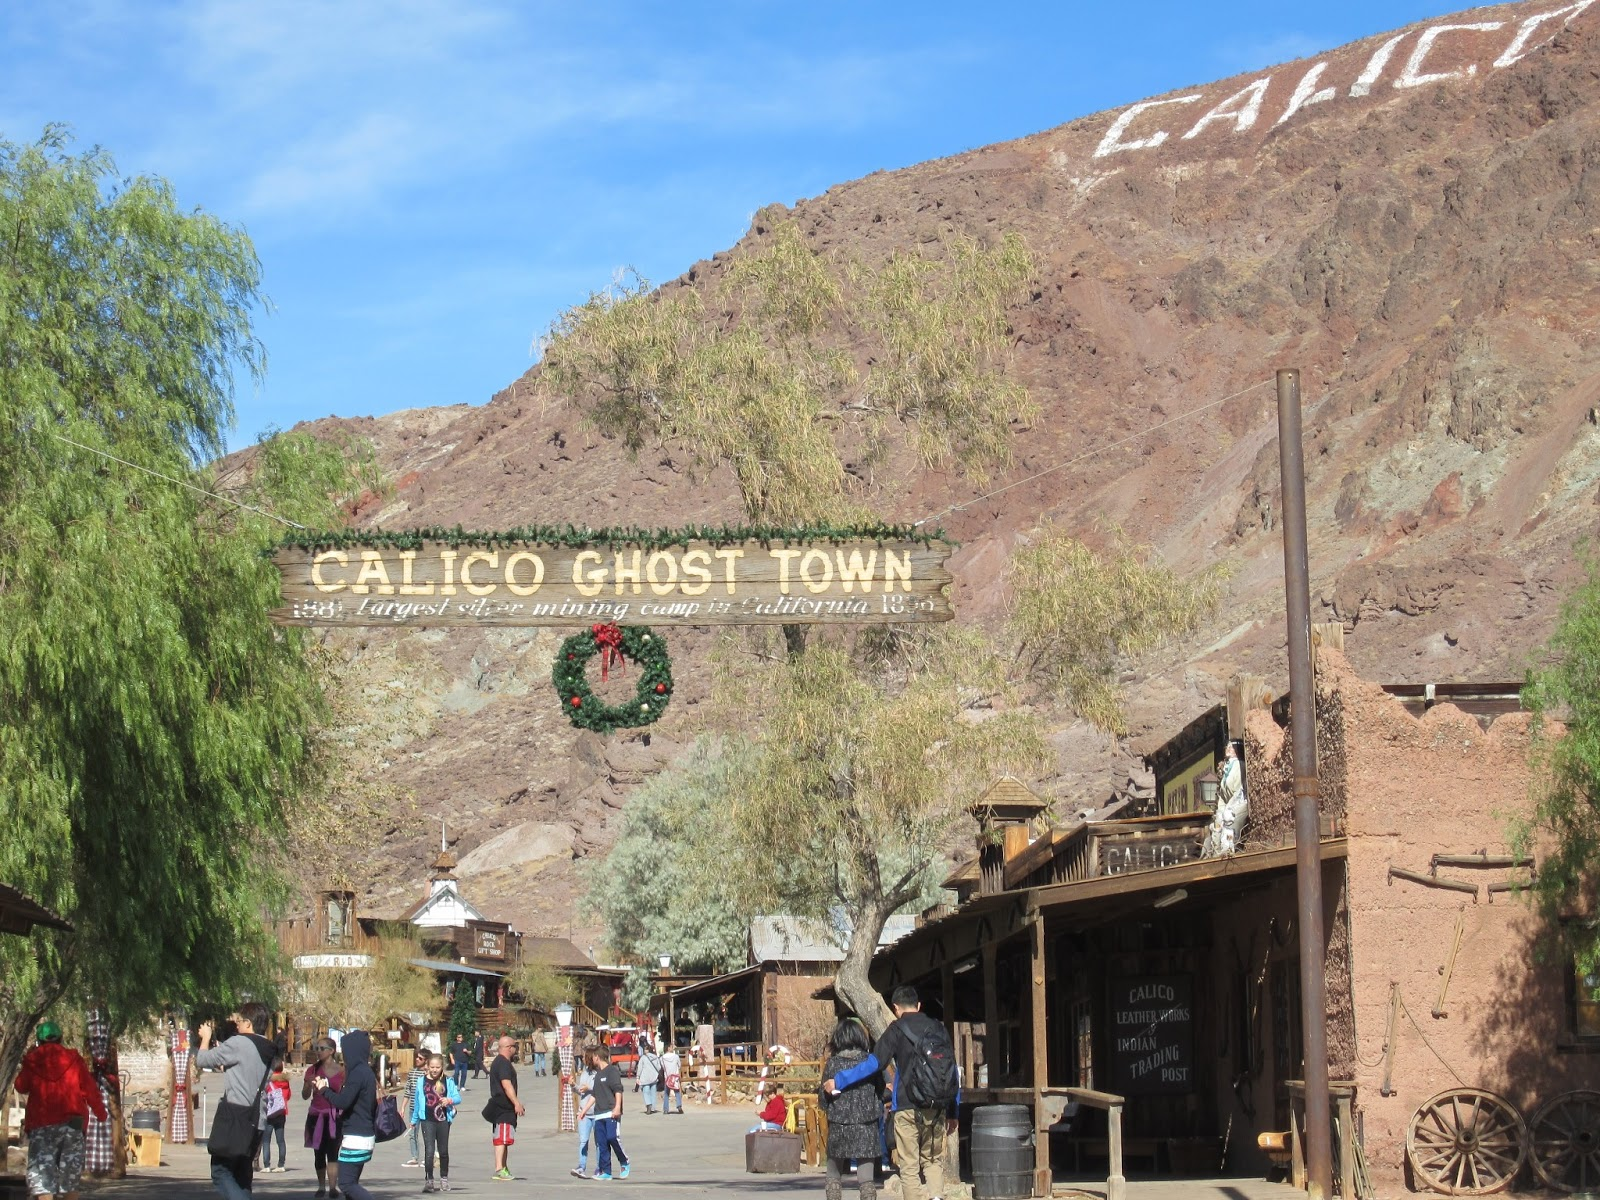 Dustinations: Calico Ghost Town, Thanksgiving Weekend 2012